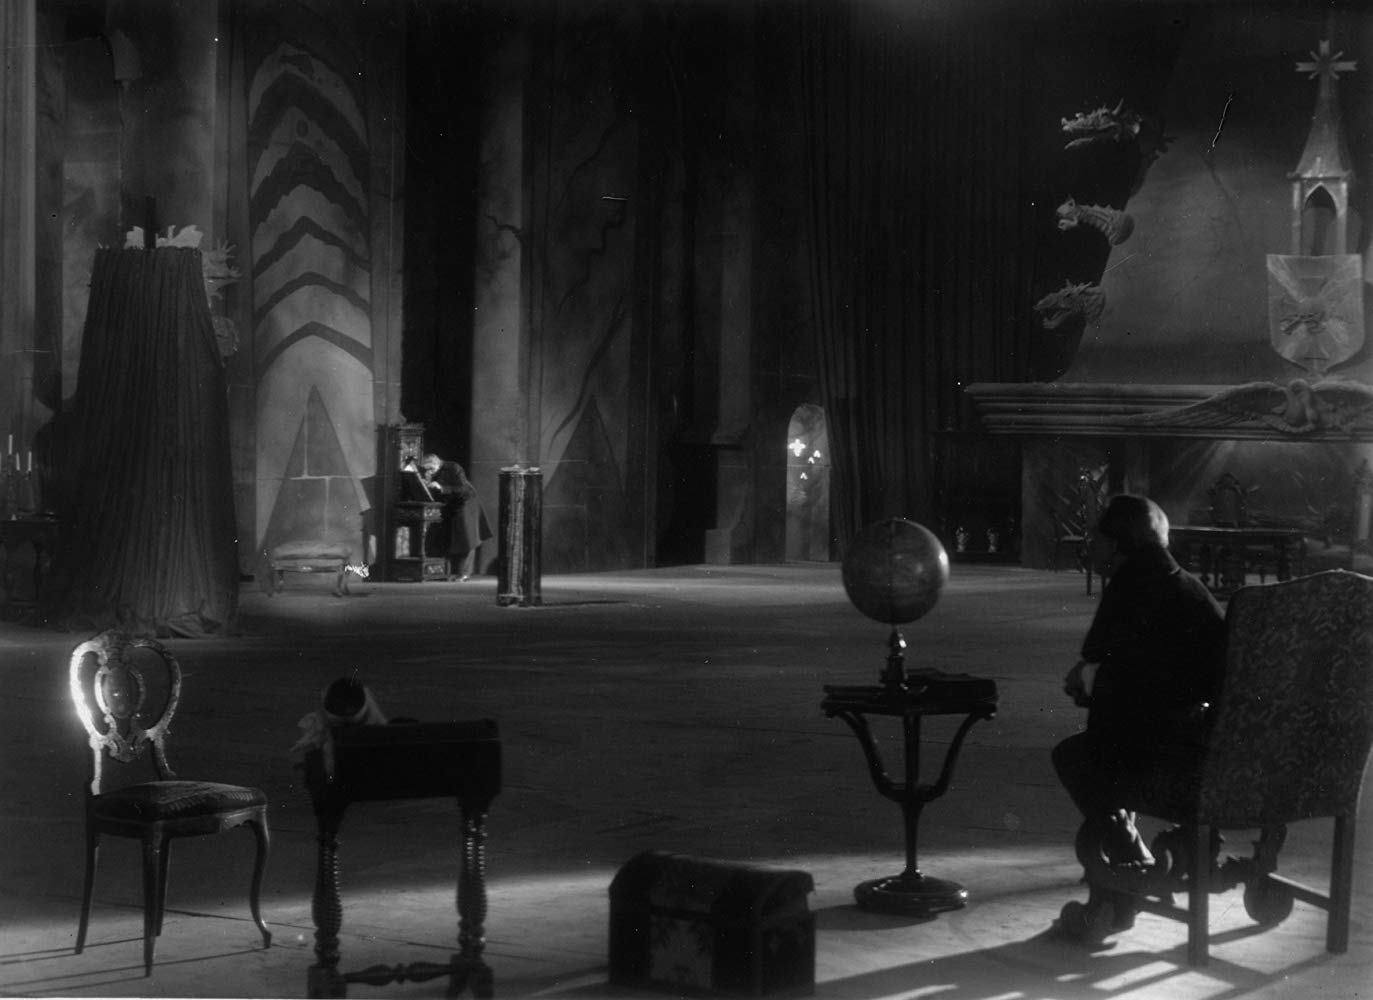 The interior of the House of Usher in The Fall of the House of Usher (1928)